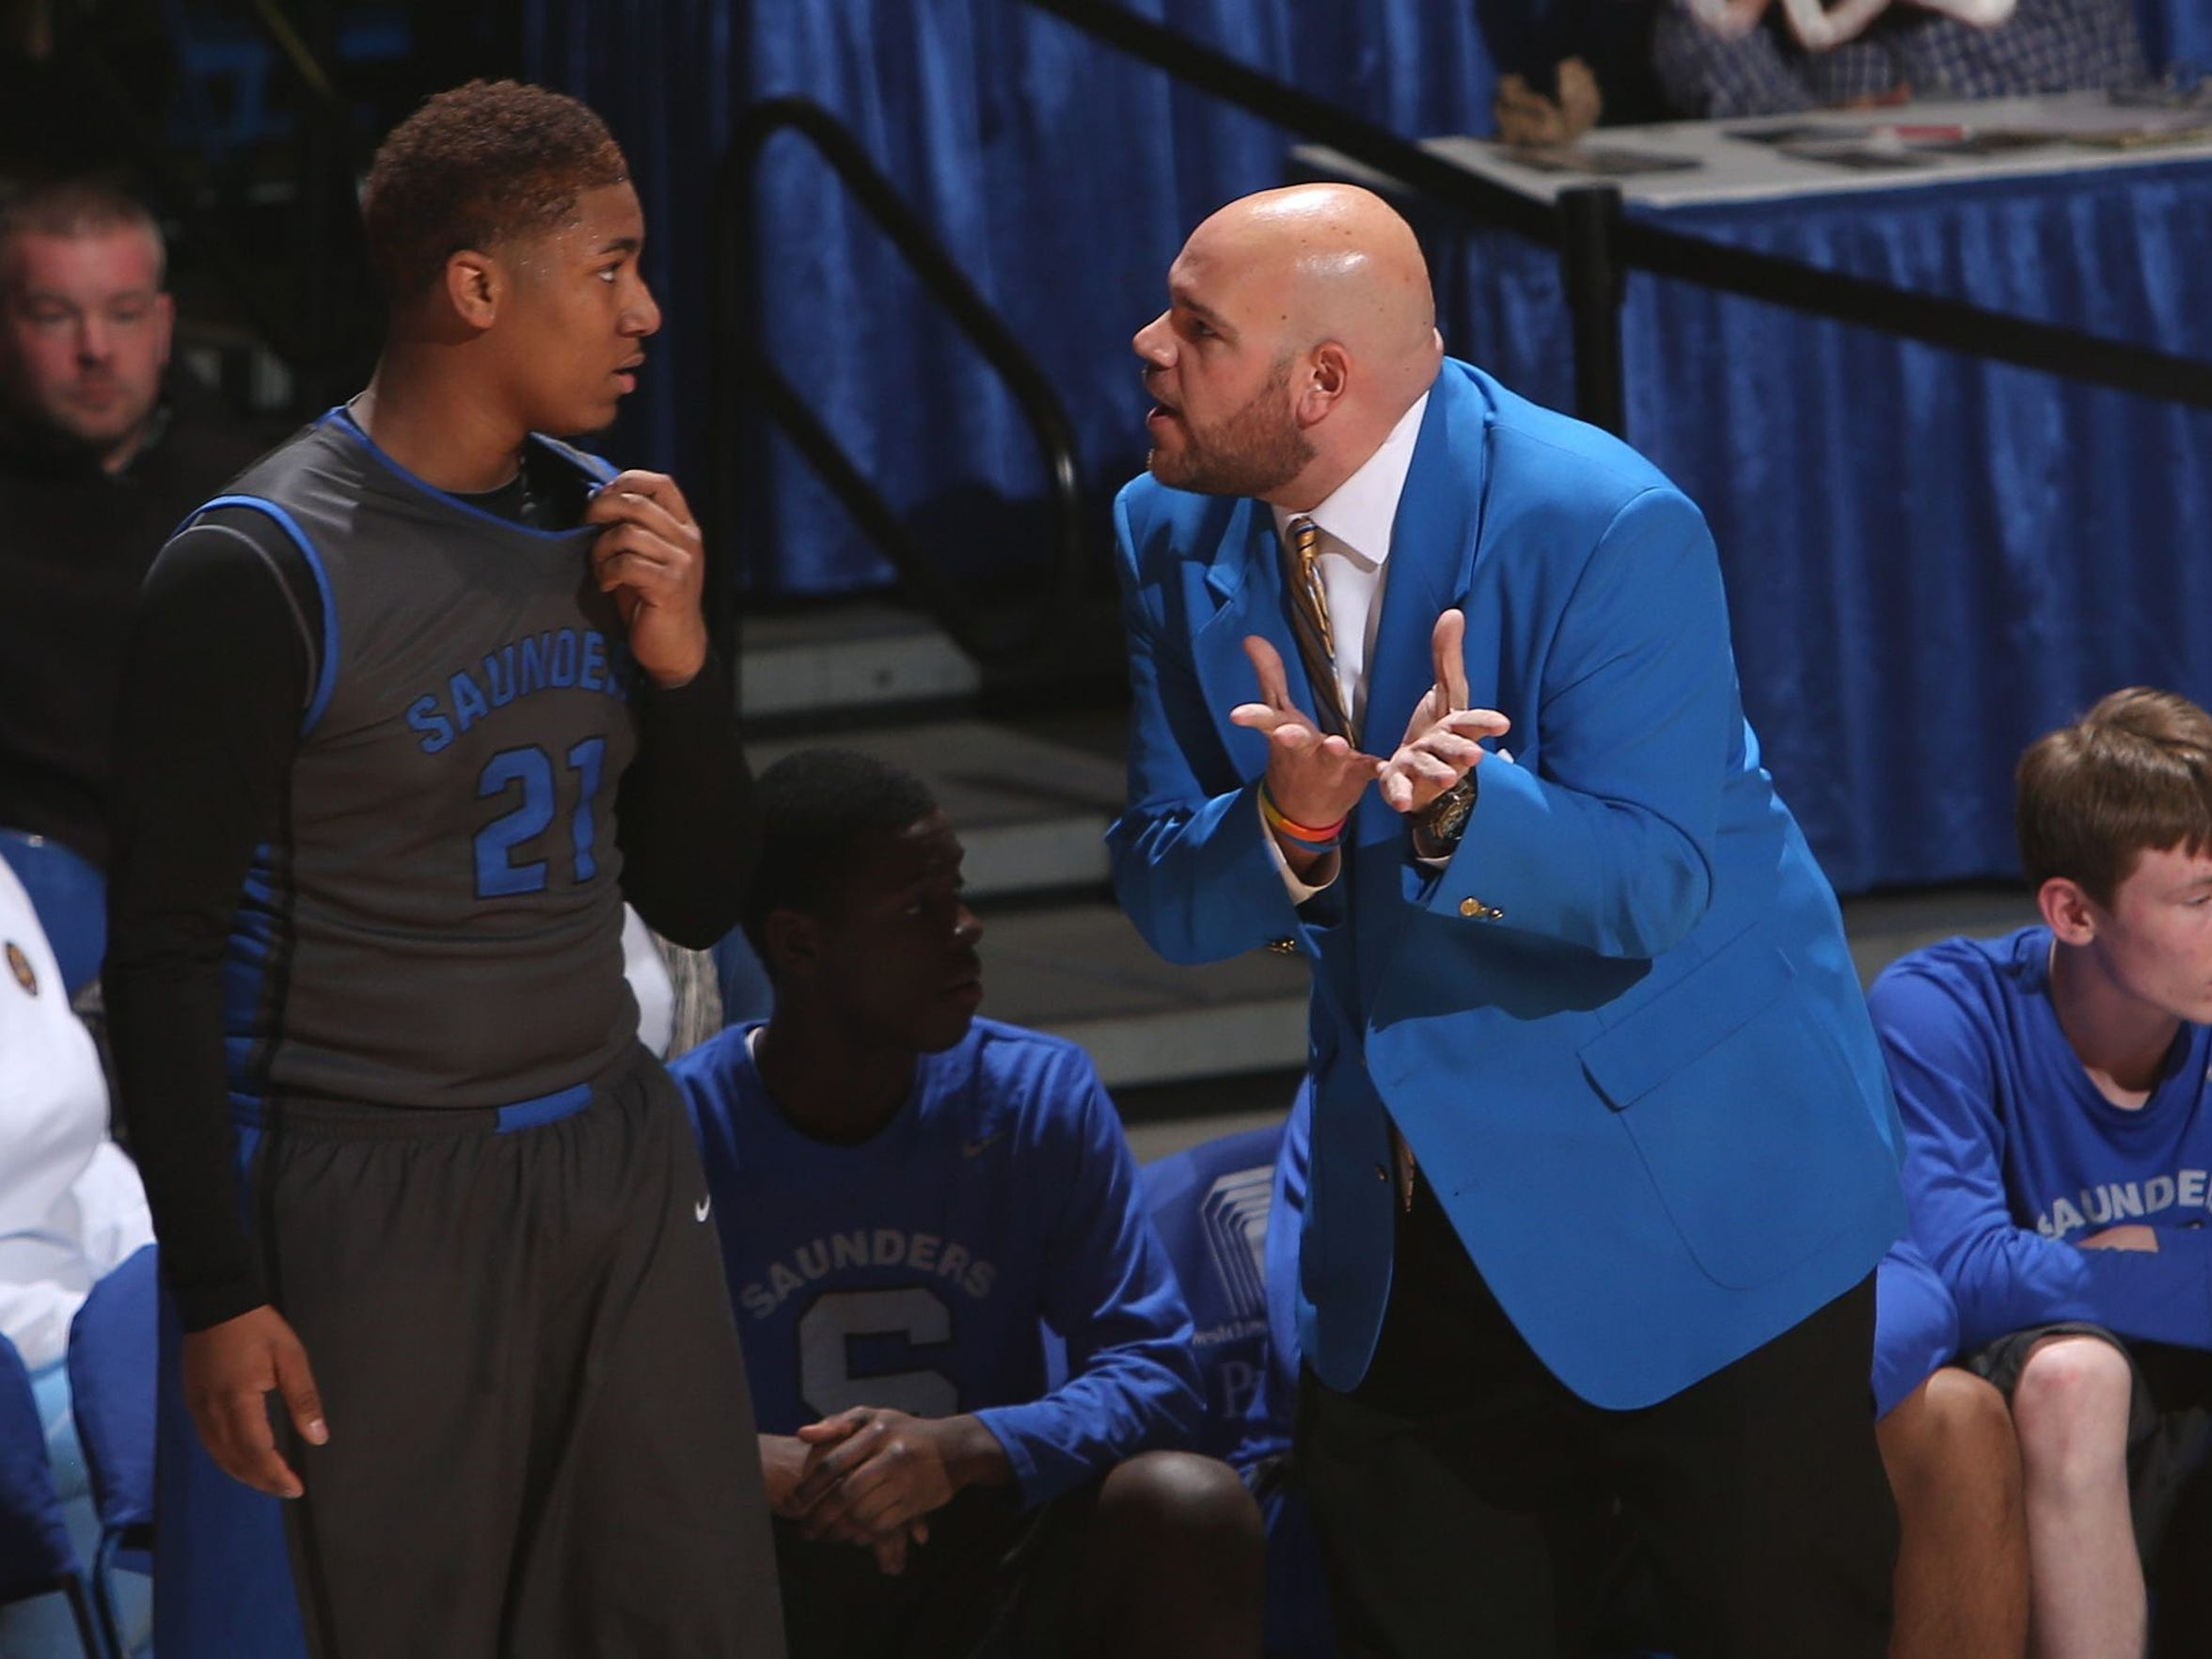 Anthony Nicodemo, right, speaks to a player during a game. Nicodemo is one of few openly gay high school coaches.